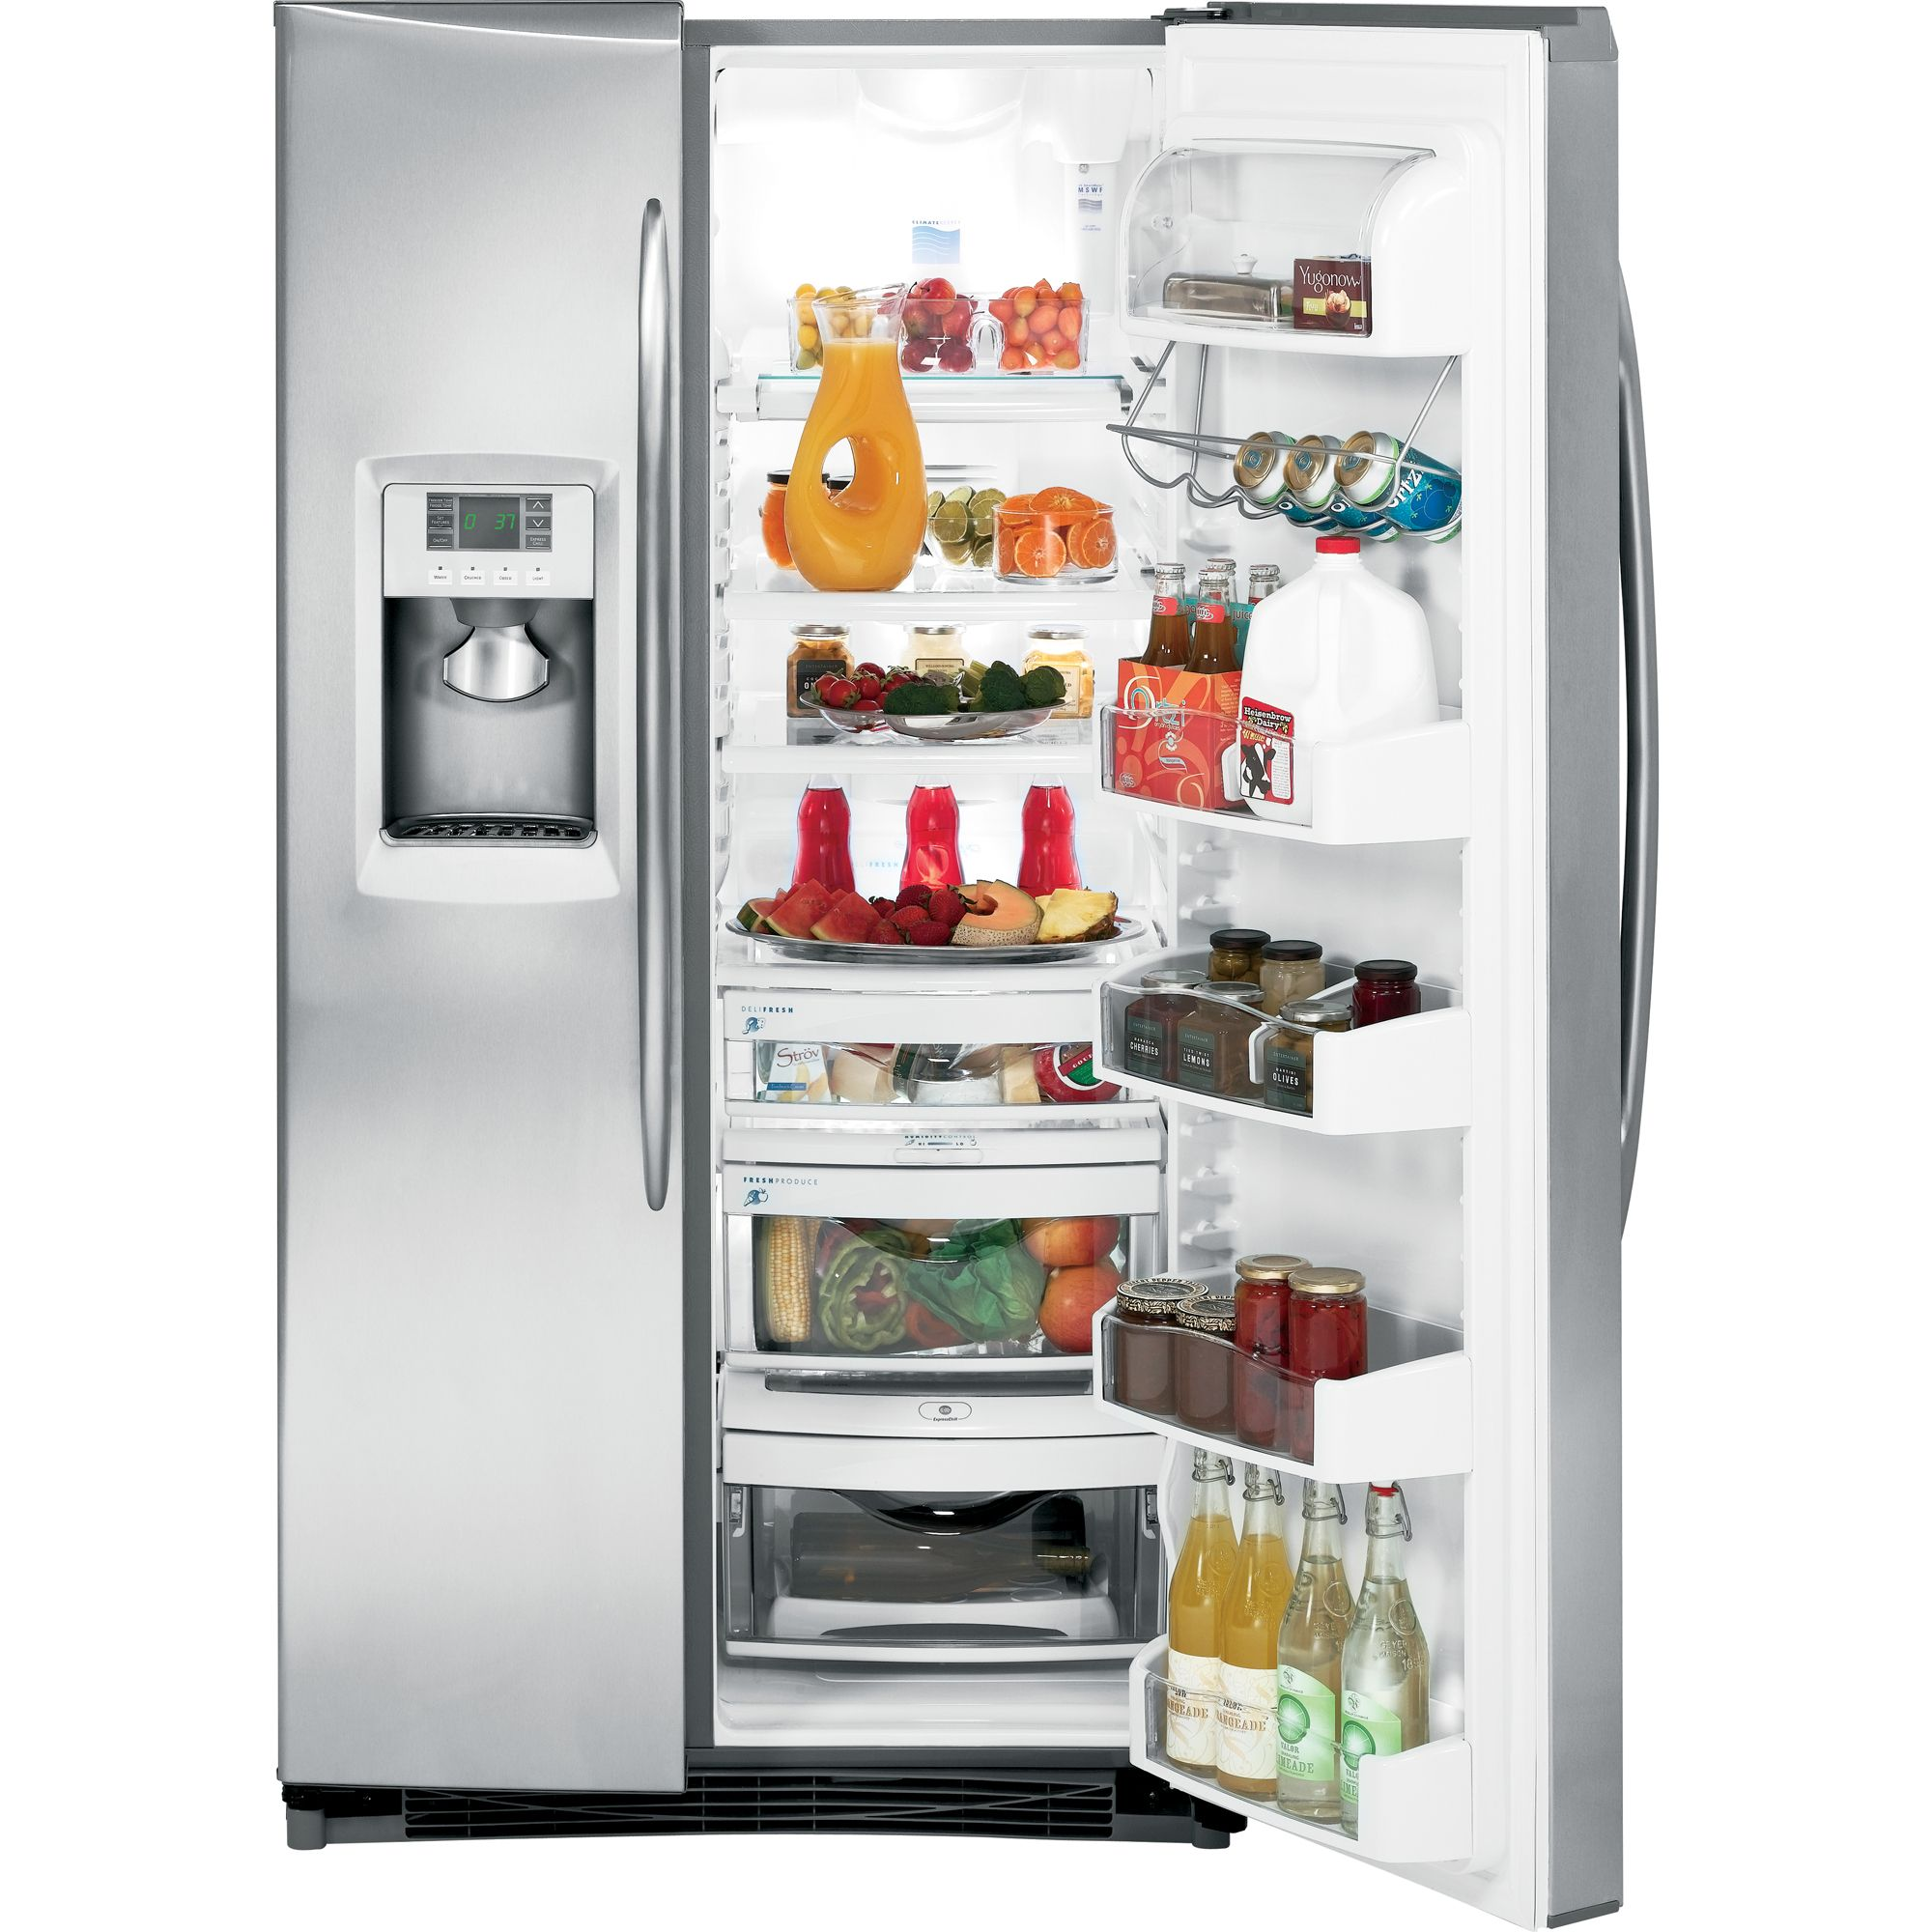 GE 25.6 cu. ft. Side-By-Side Refrigerator